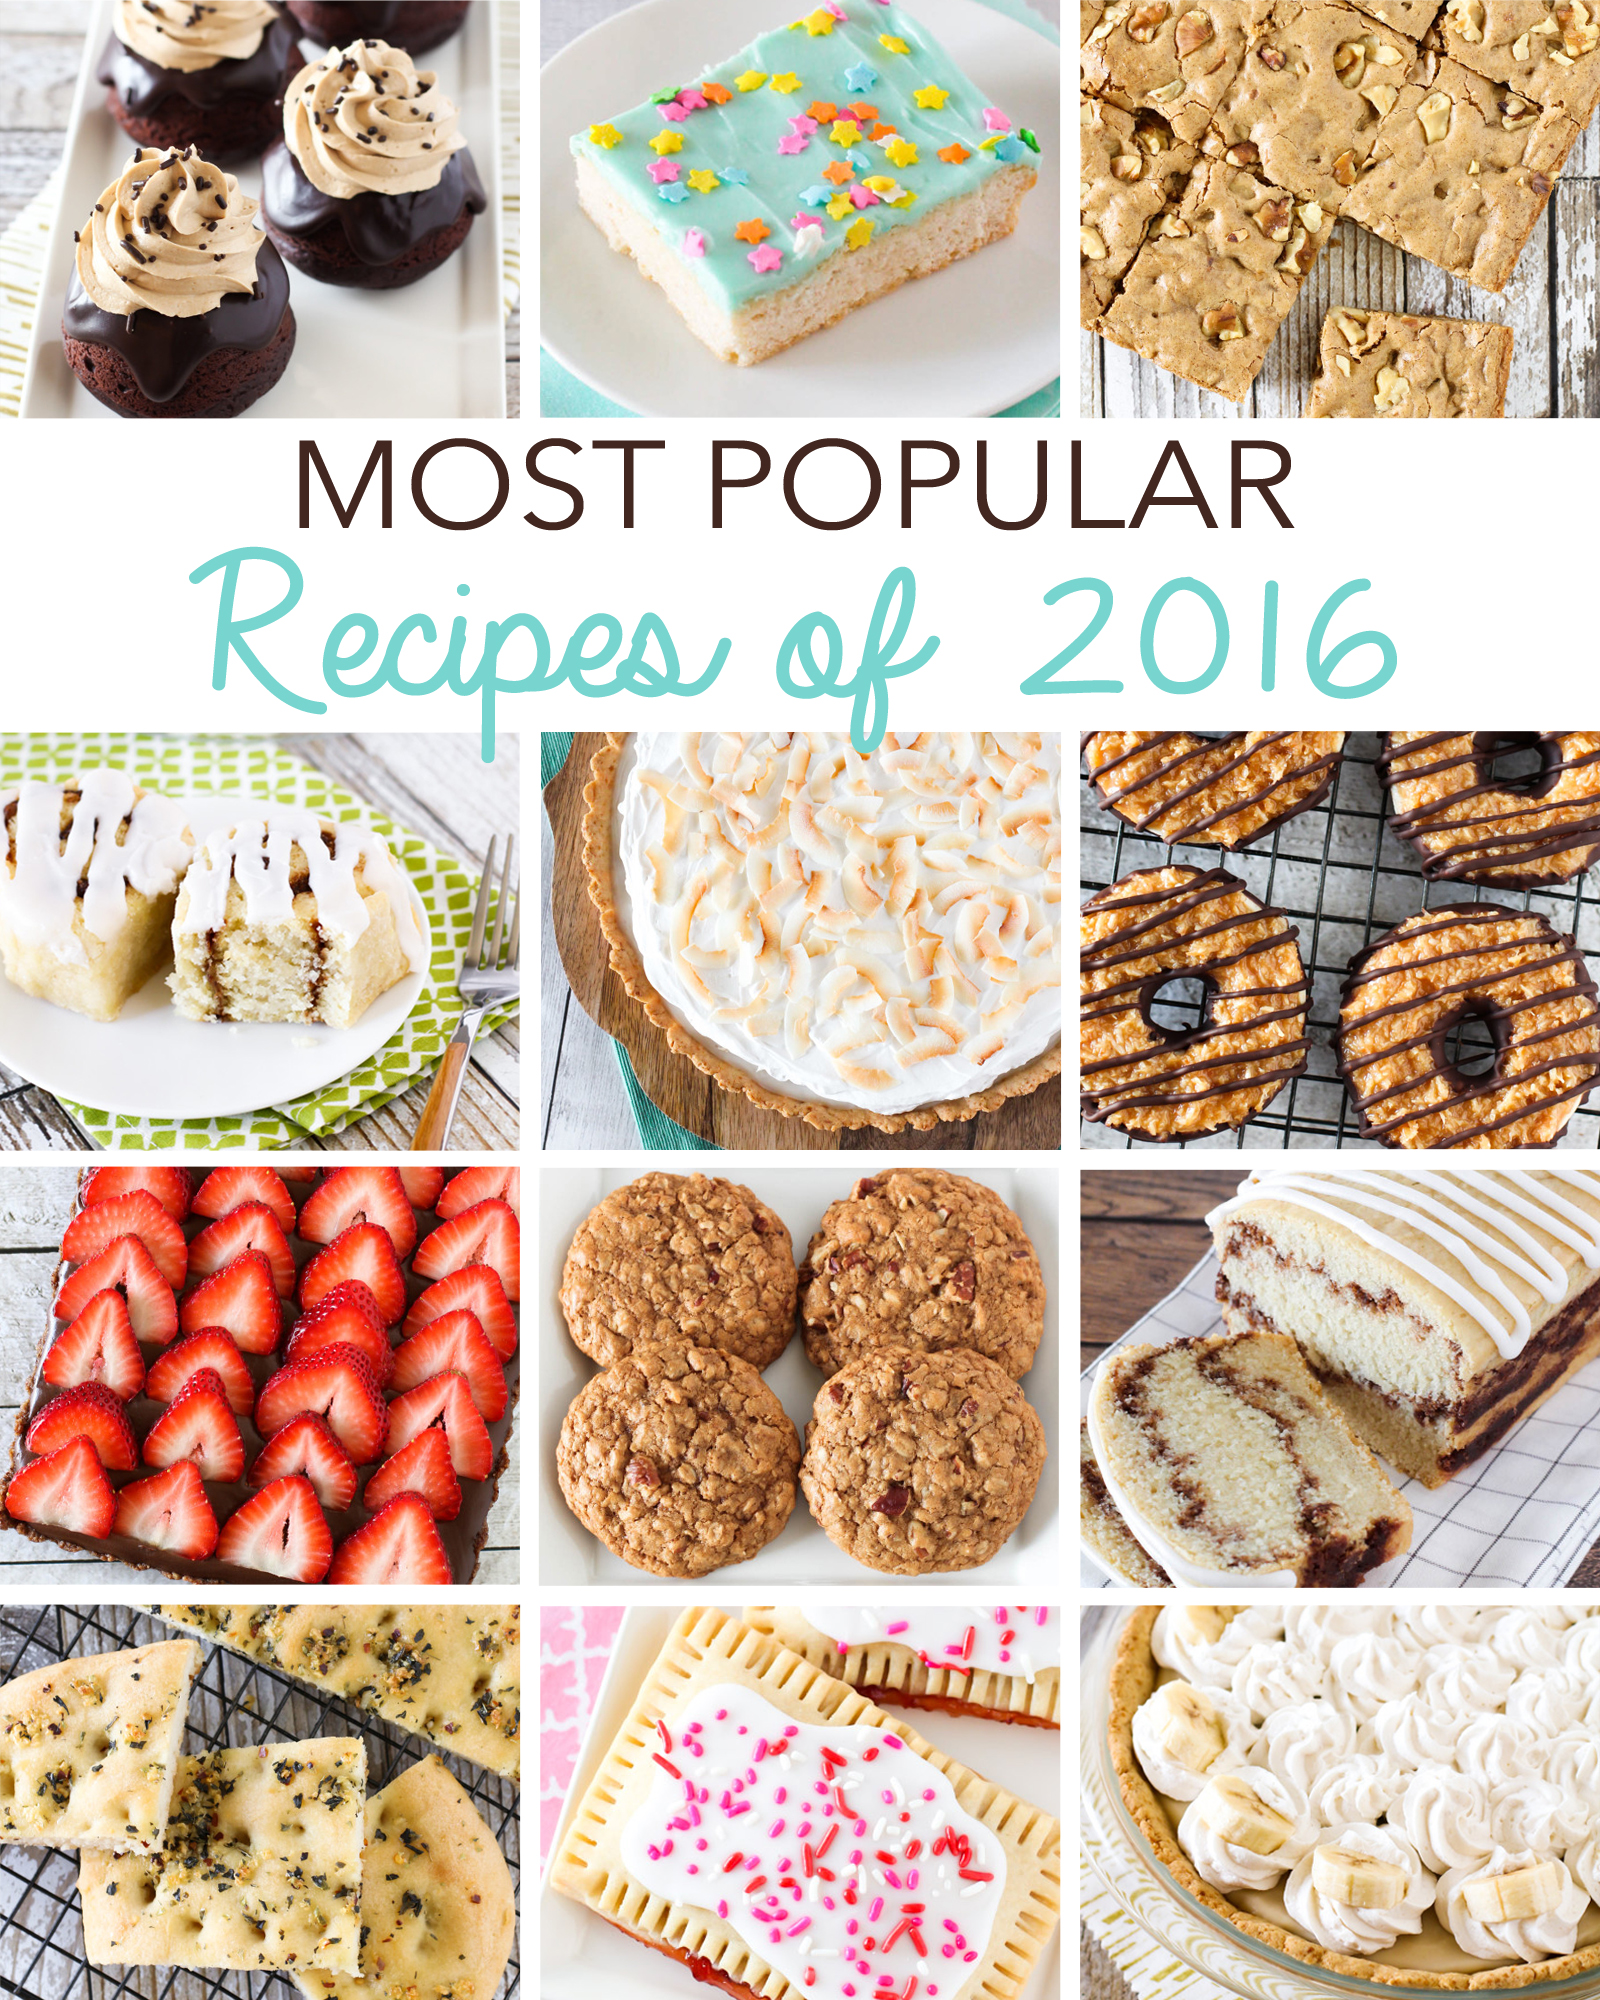 Sarah Bakes Gluten Free Most Popular Recipe of 2016. You're most favorite recipes of the year!